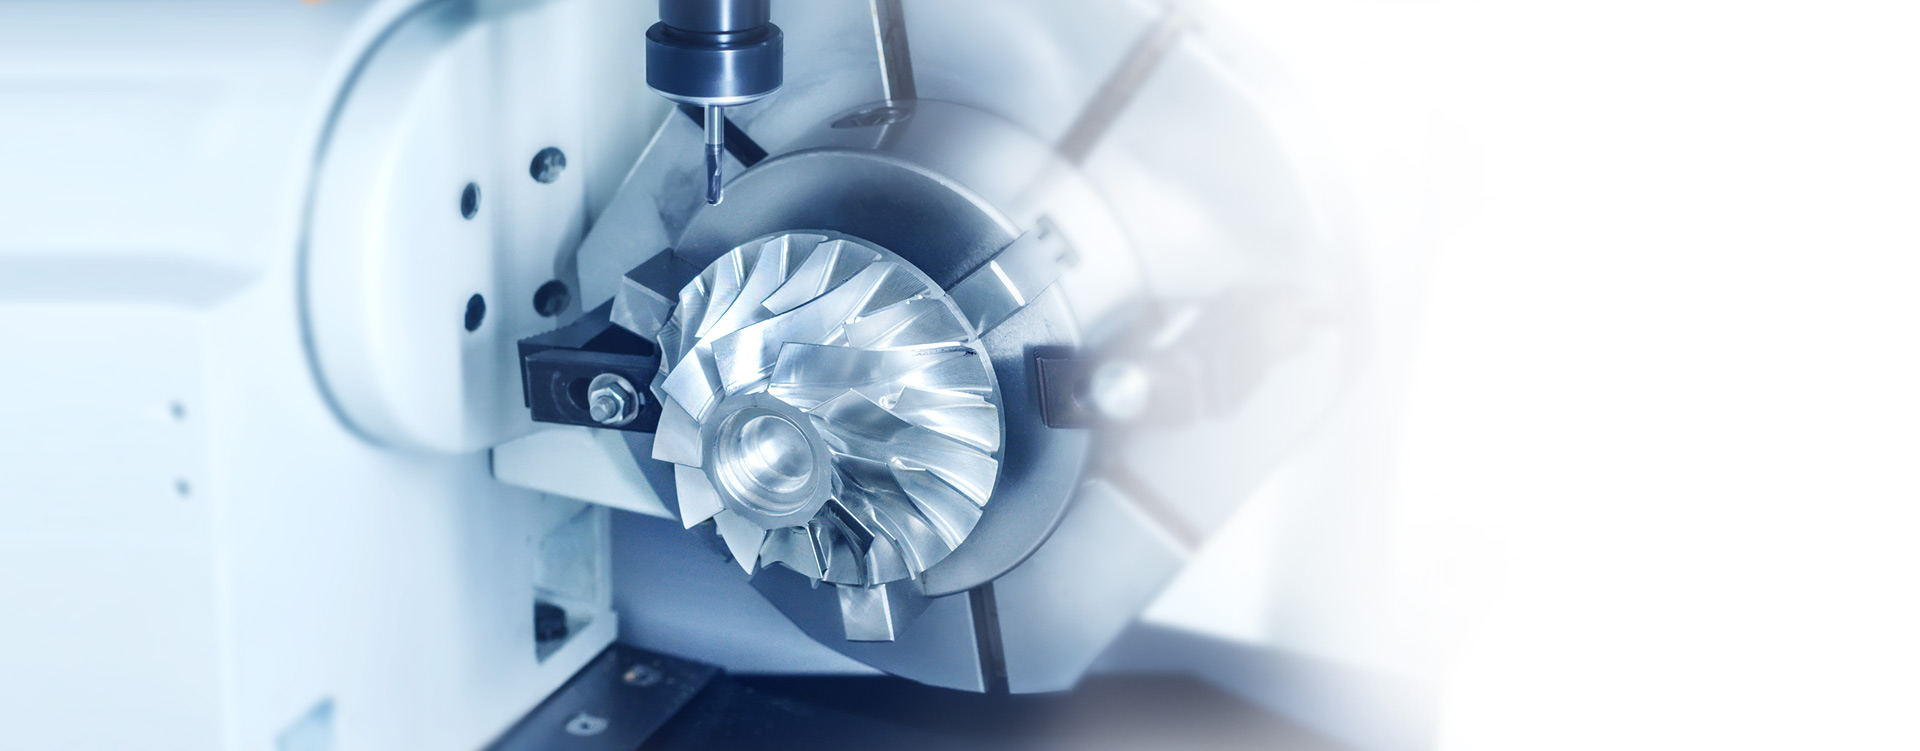 Advanced 4-Axis and 5-Axis Milling